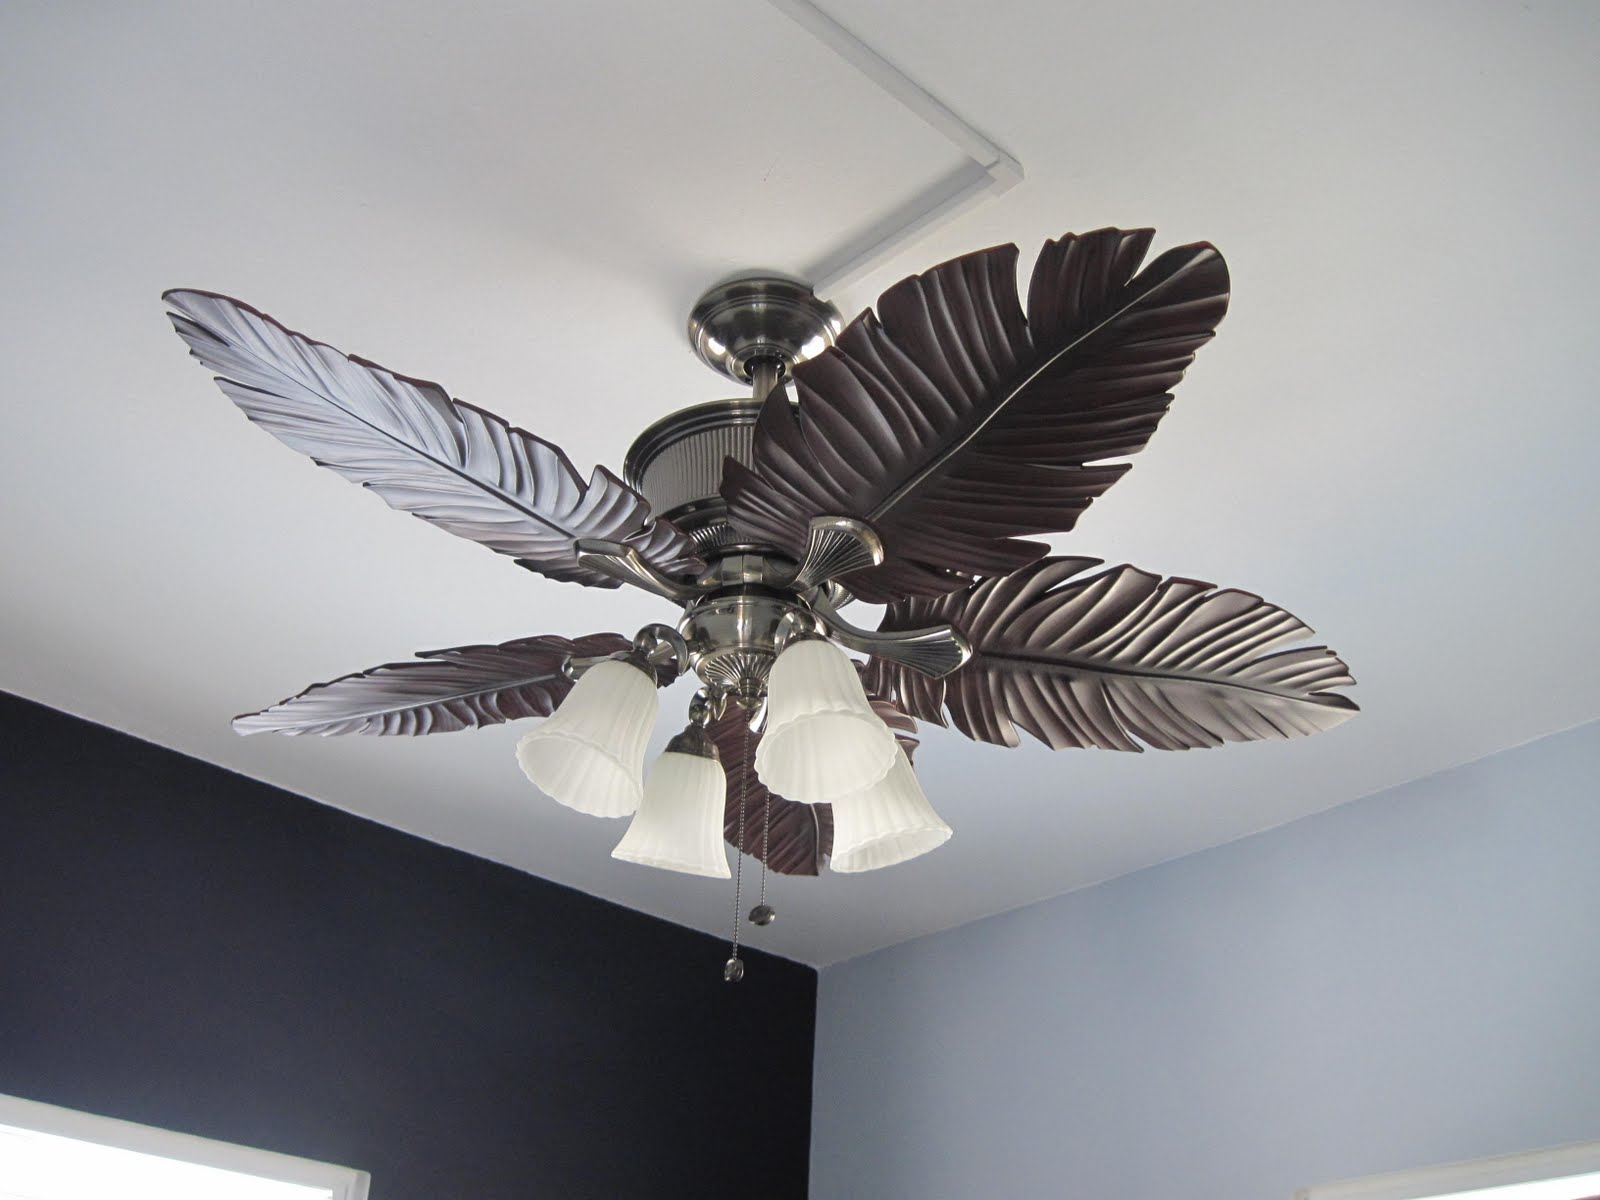 White Tropical Ceiling Fans Winjama Ketchup Part 1